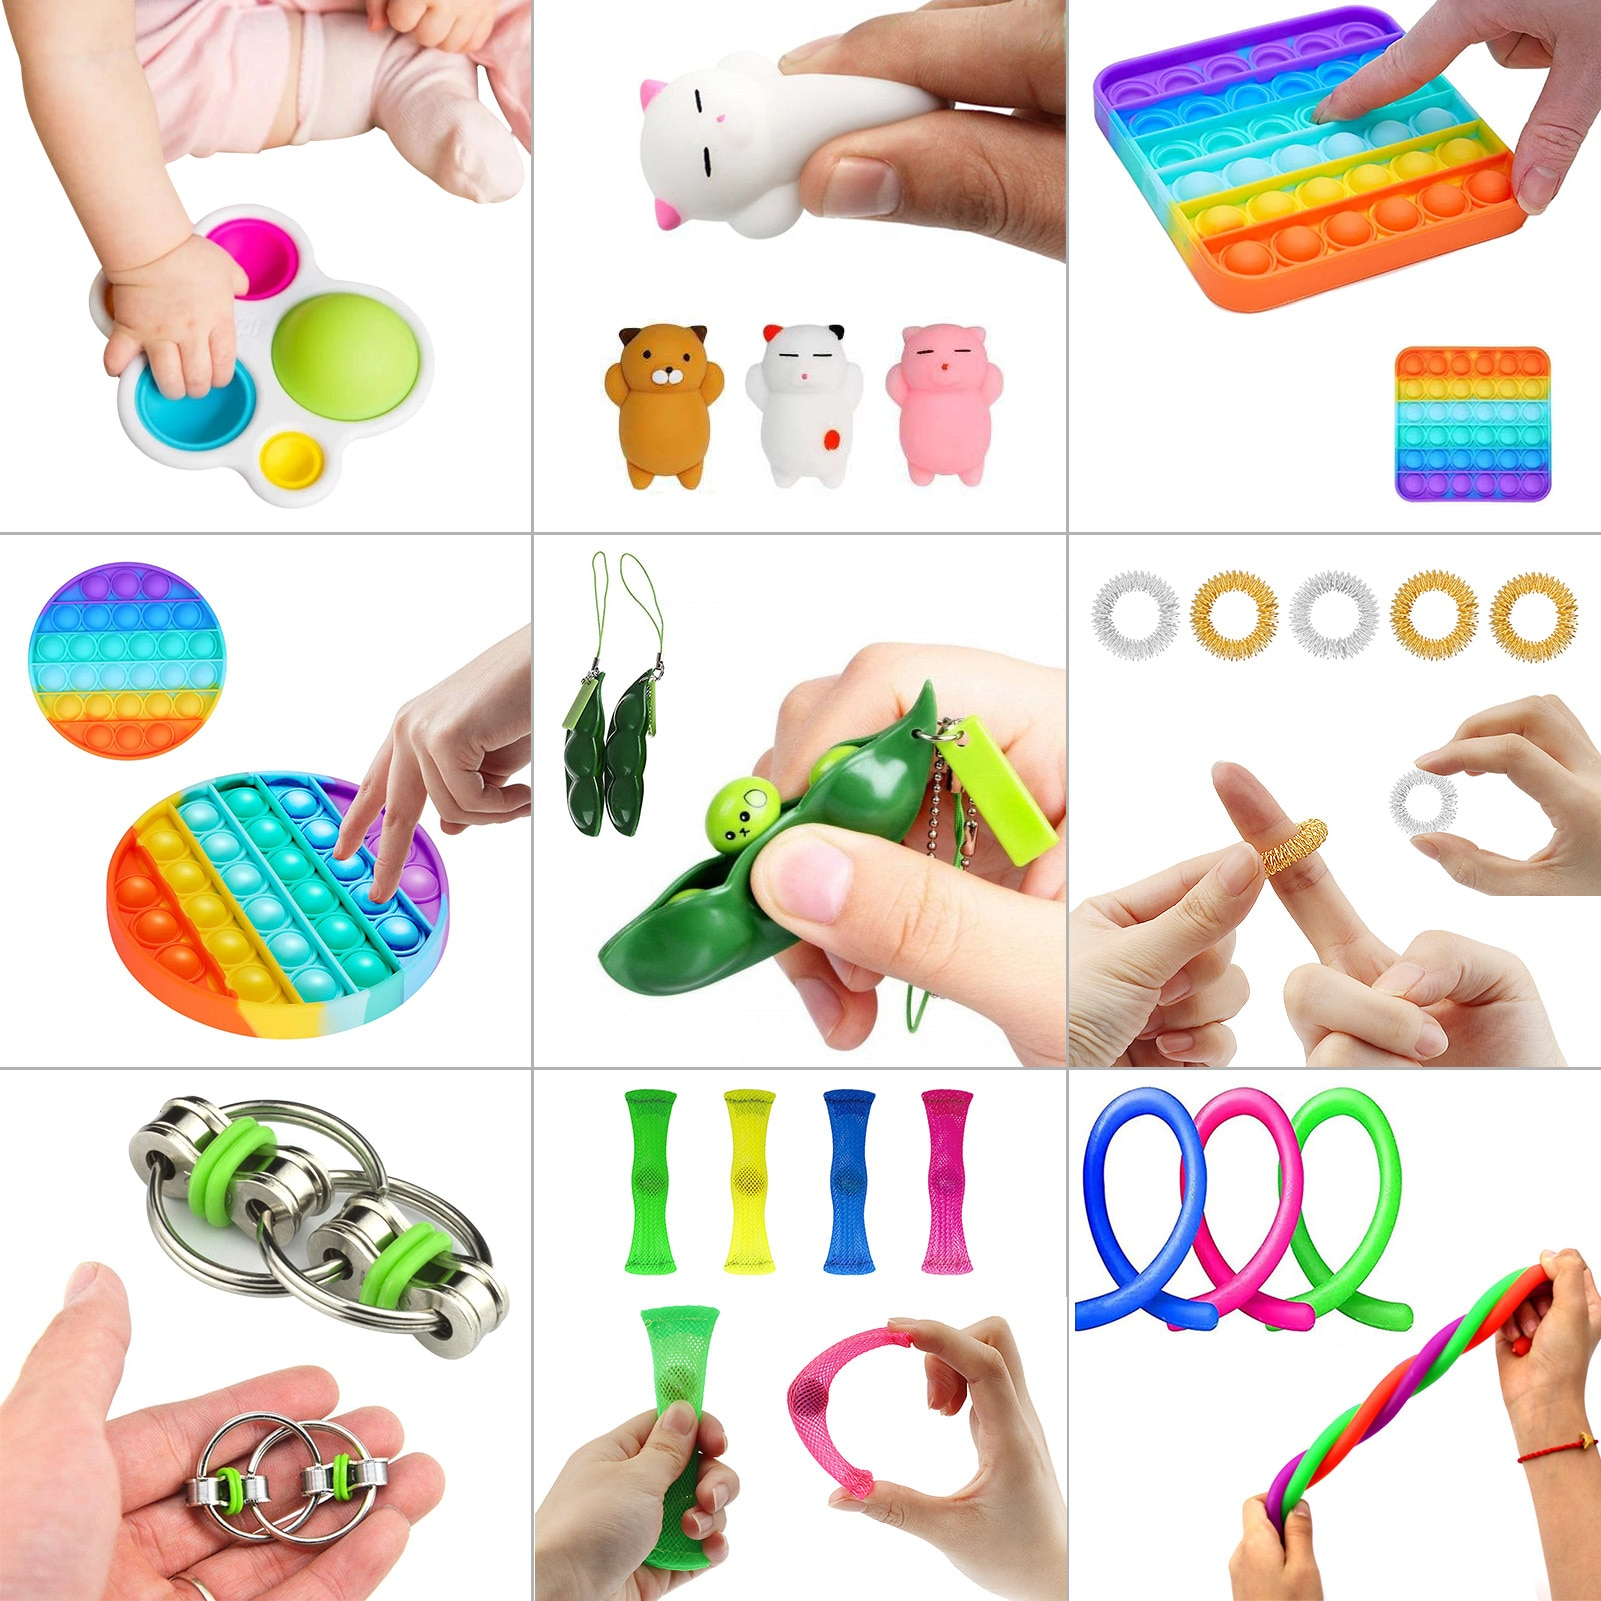 23Pcs Sensory Toy Set Antistress Silicone Durable Non-toxic Decompression Sress Reliver Toys For Children Adults Adhd Autism enlarge